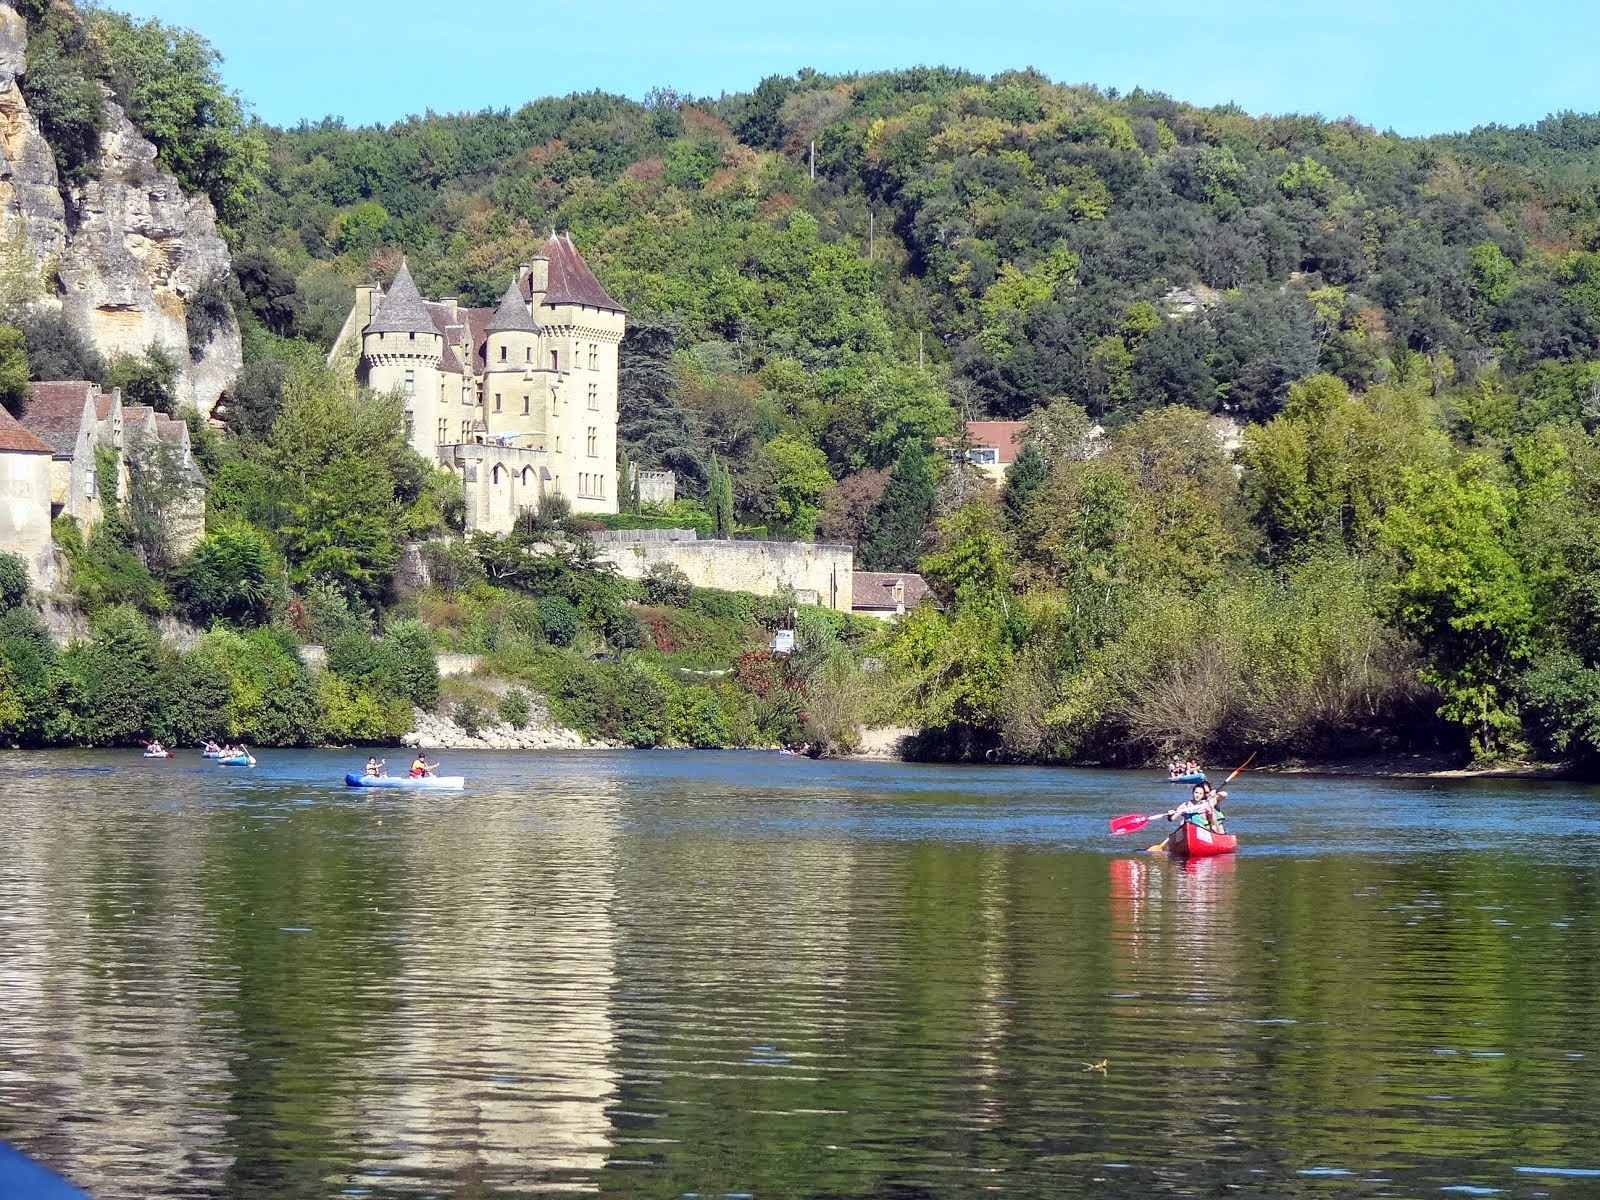 TheRiver Dordogne